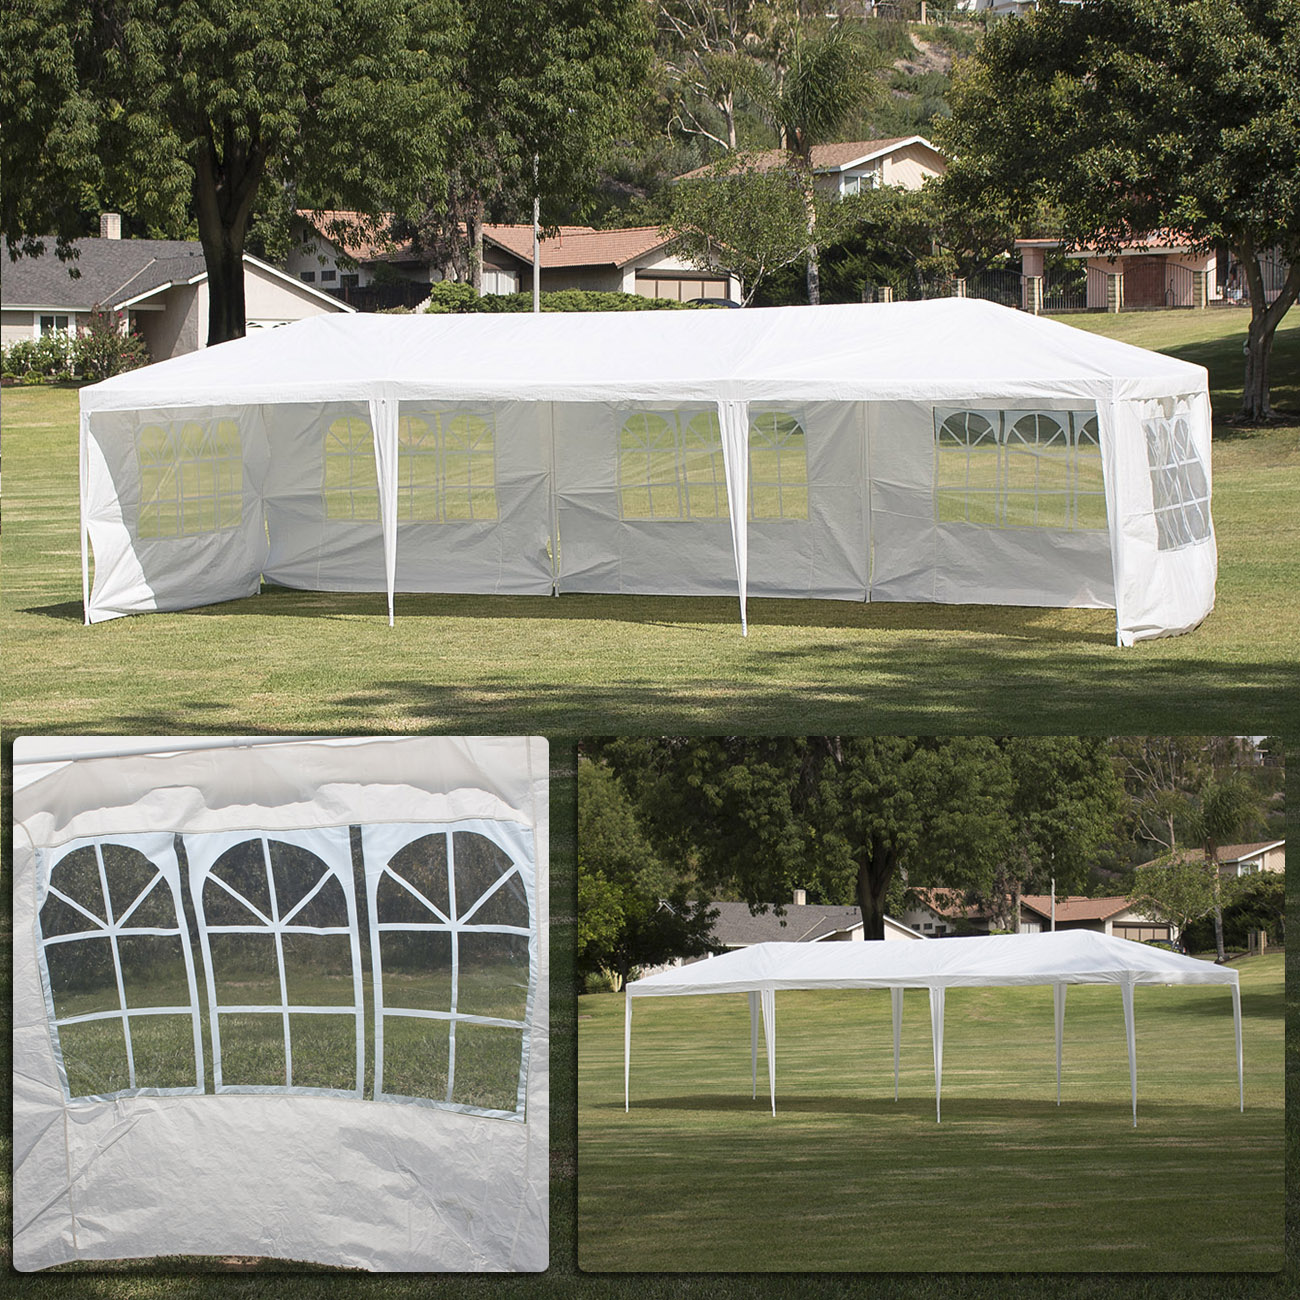 10u0027x30u0027Canopy Party Wedding Outdoor Tent Gazebo Pavilion Cater Events W/ 5  Walls